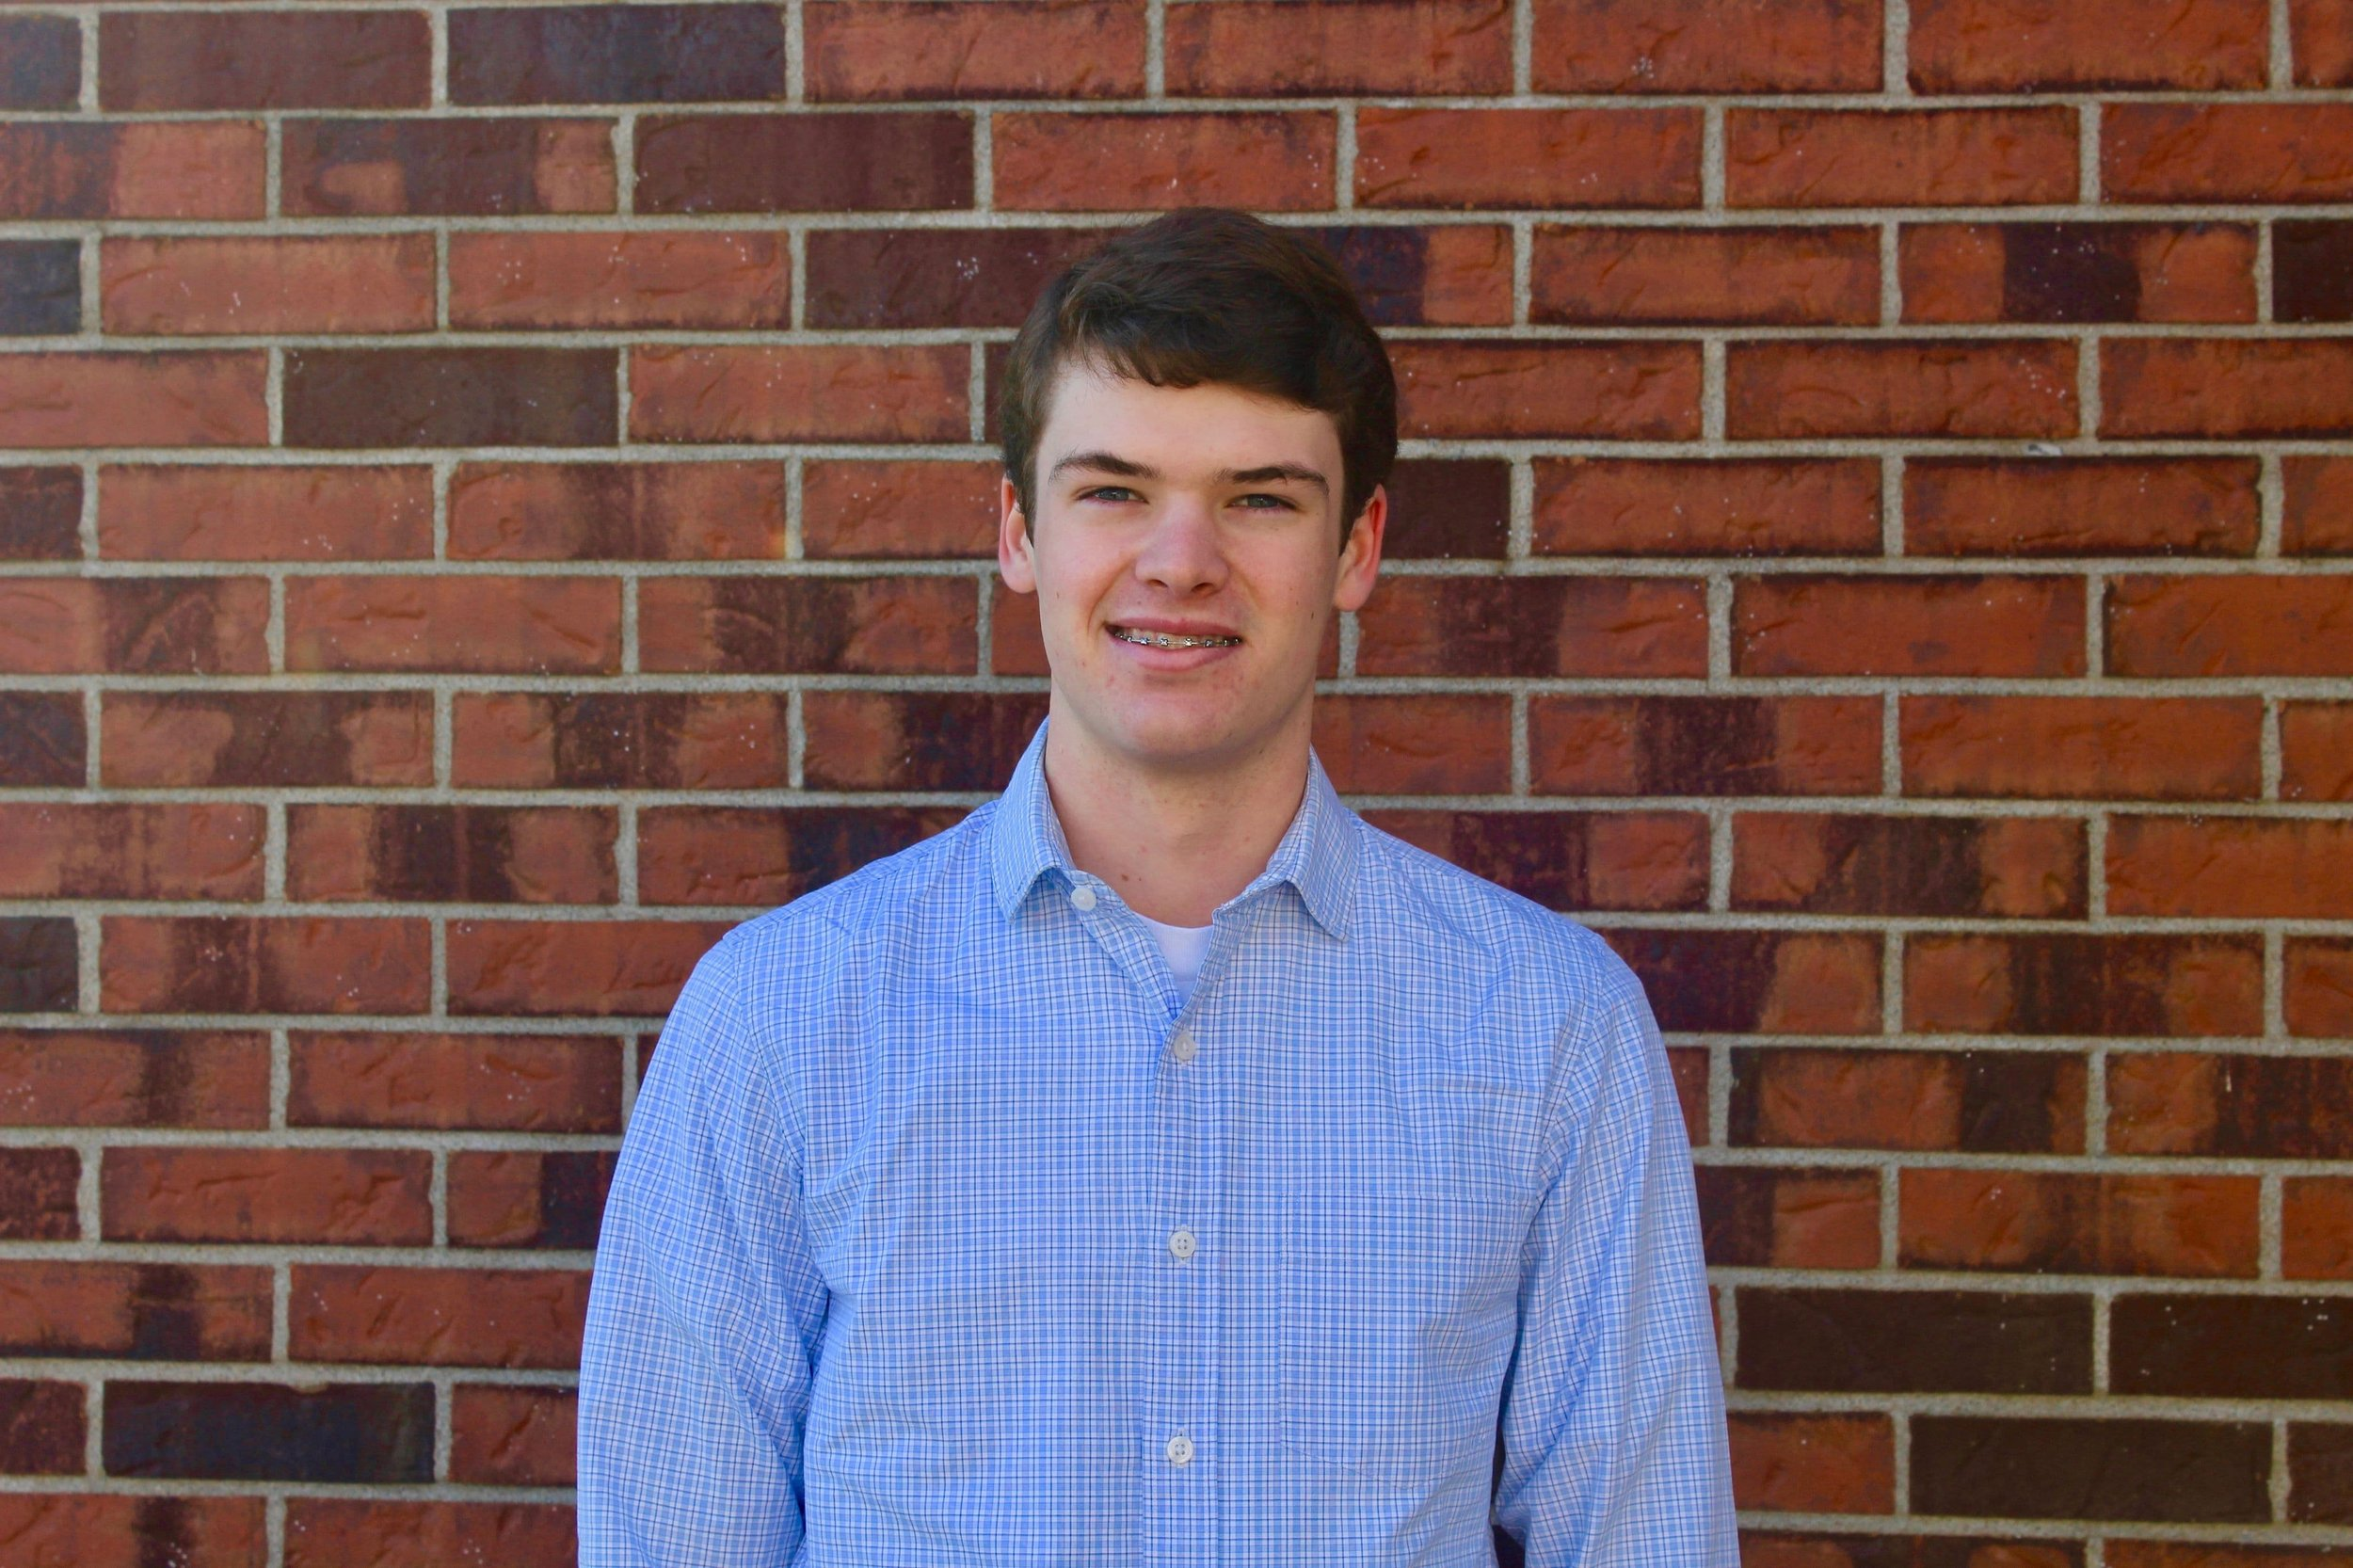 Shamus McGuire   My name is Shamus McGuire and I am the current VP design. I am a U3 Bioresource engineer and this is my 4th year on Mutrac. As VP design I oversee the design and construction of the tractor. I also manage the subteams to keep everyone on track and working together.